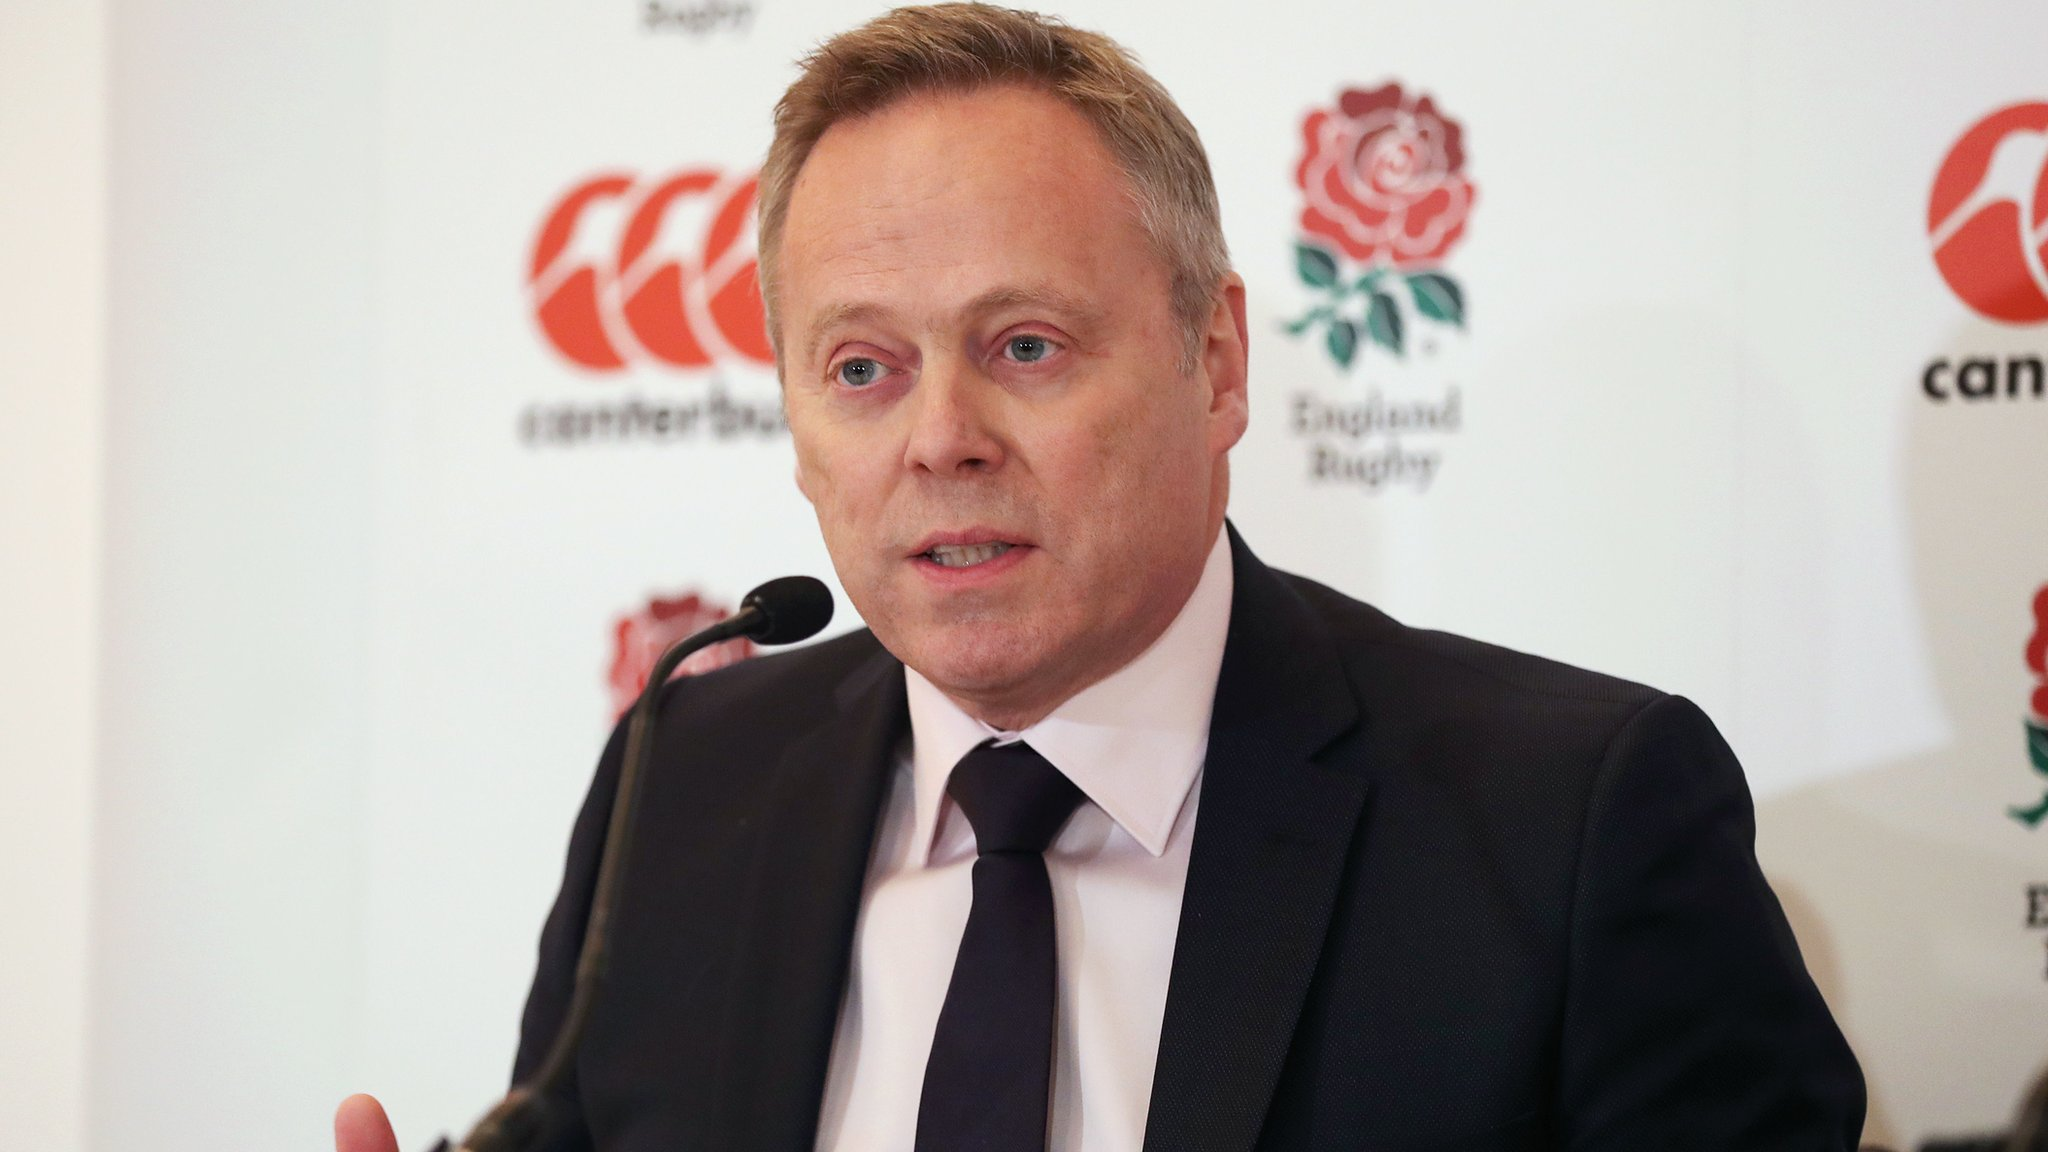 RFU: Steve Brown resigns as chief executive after 14 months in charge